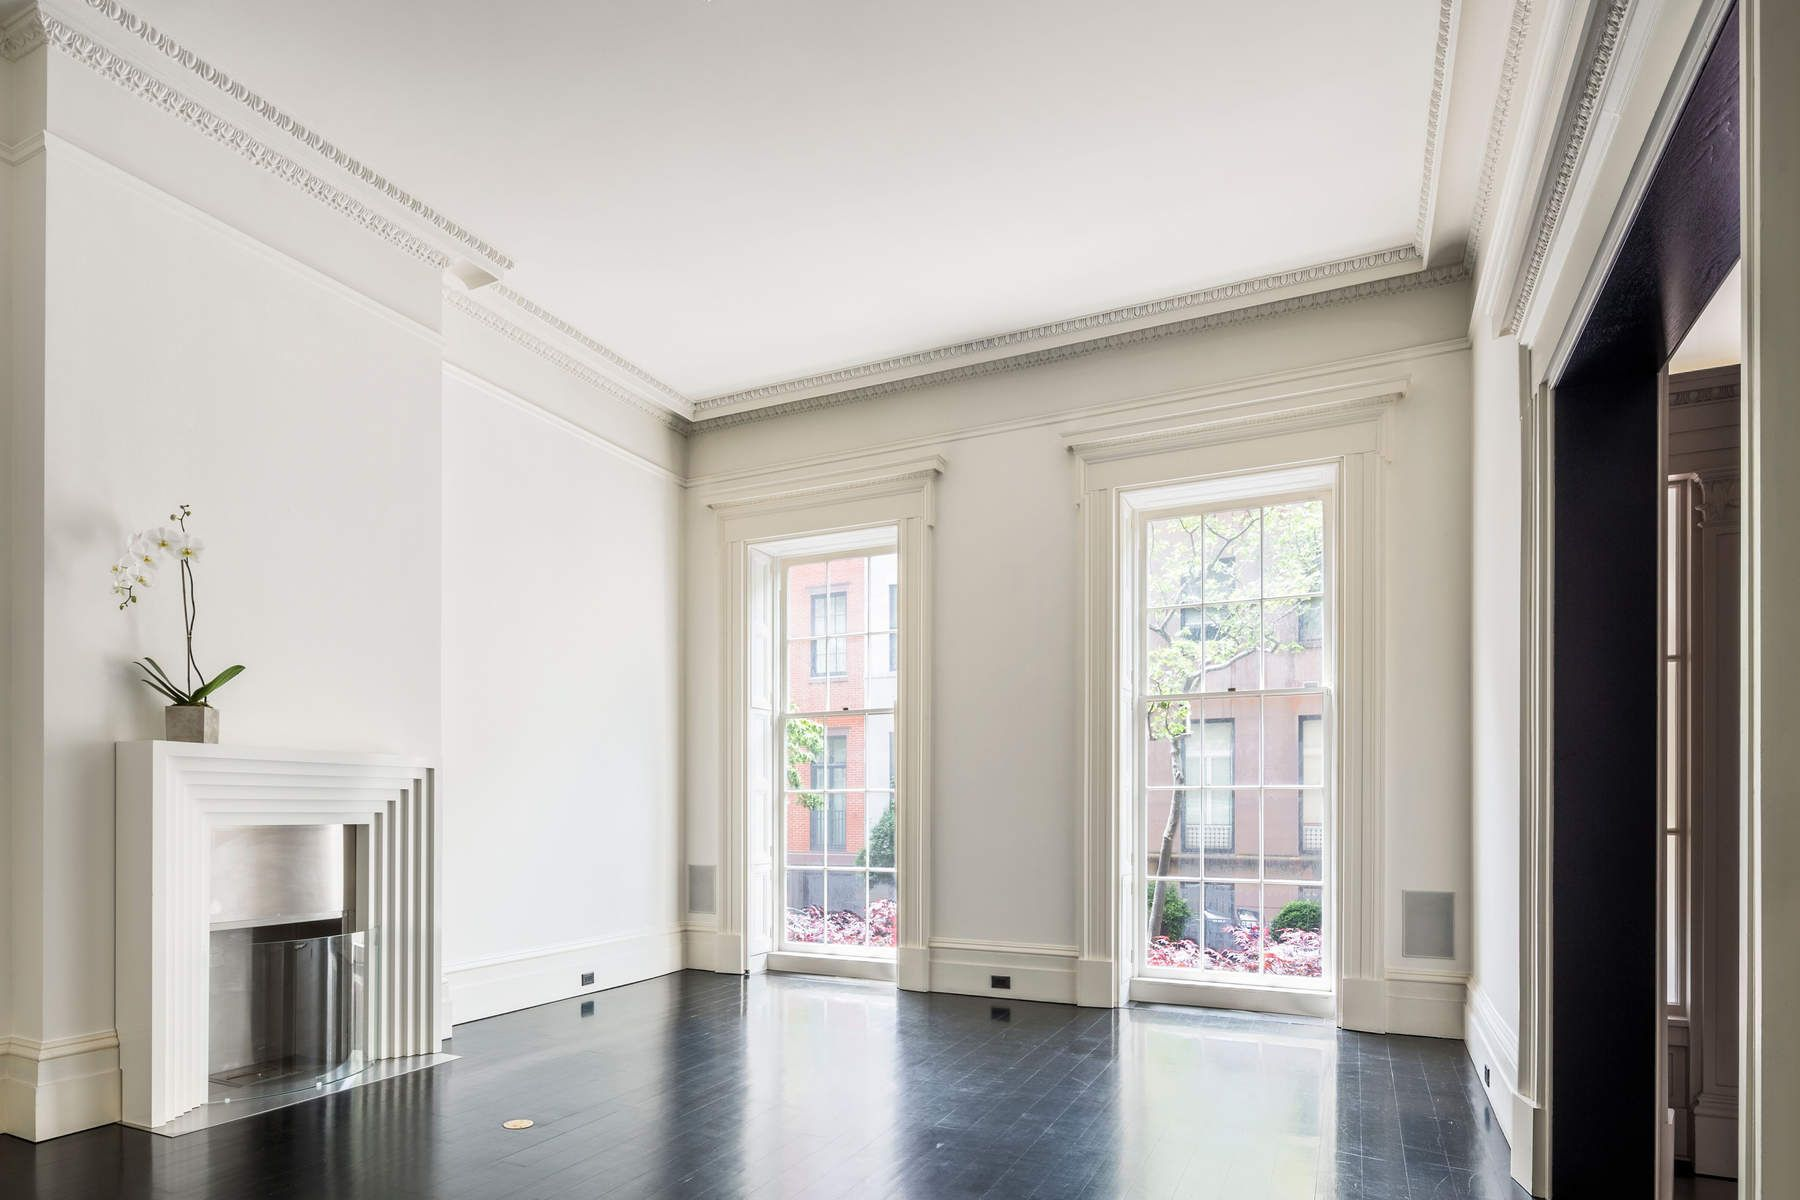 Townhouse for Sale at 19 West 12th Street 19 West 12th Street New York, New York 10011 United States